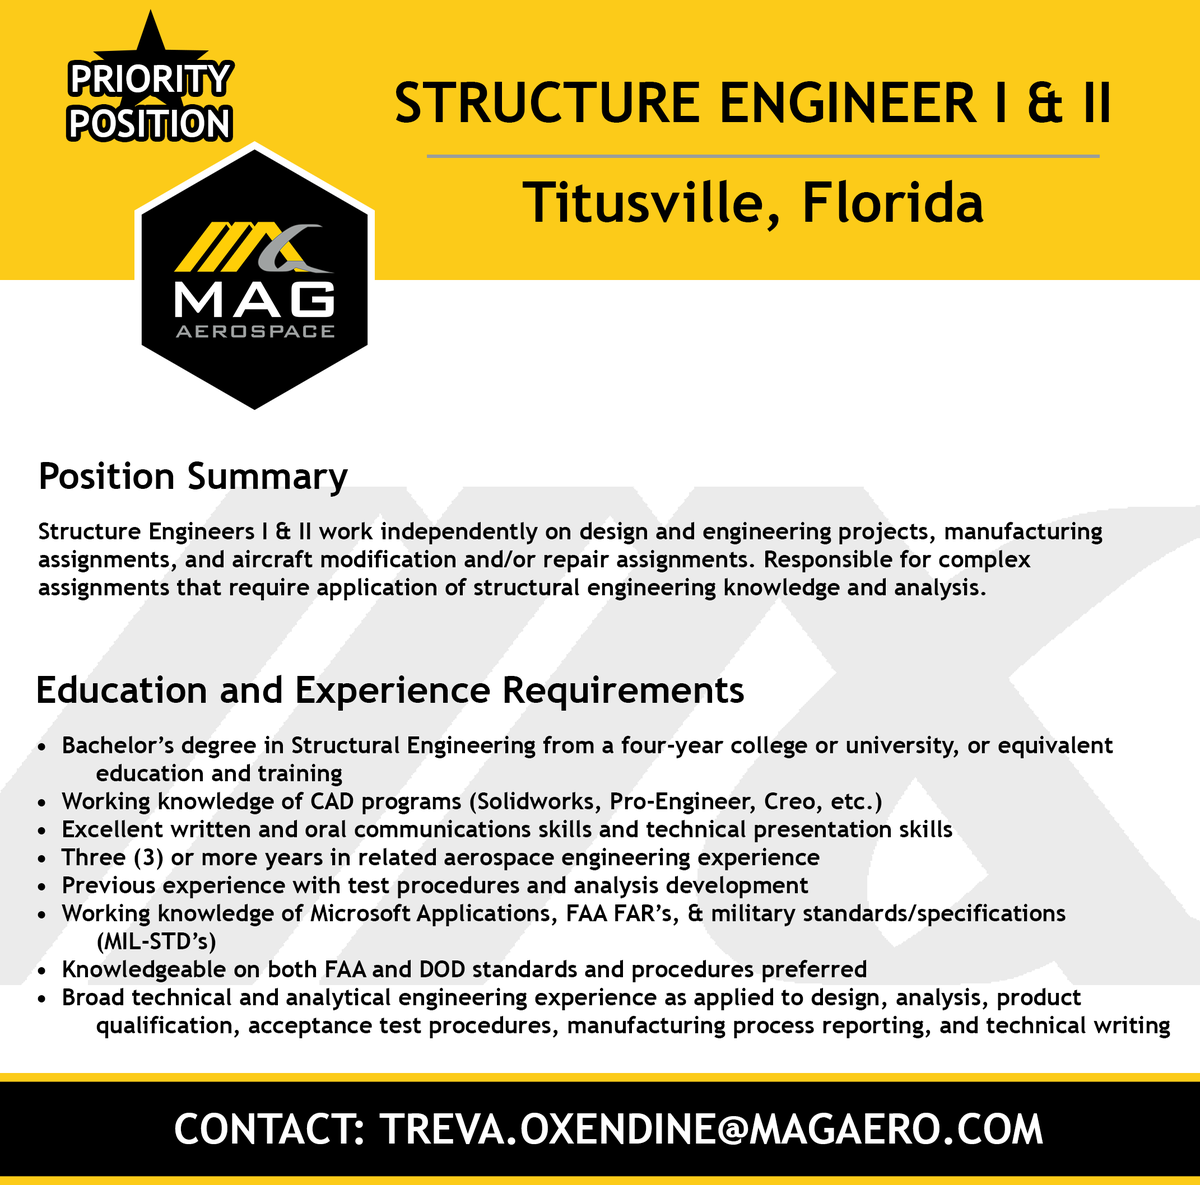 Mag Aerospace On Twitter Mag Aerospace Has Two Priority Positions Available Both Based At Our Titusville Florida Office Click The Links Below To Apply Structure Engineer I Https T Co Xpy1kstfyk Structure Engineer Ii Https T Co 3xiysvfm8i